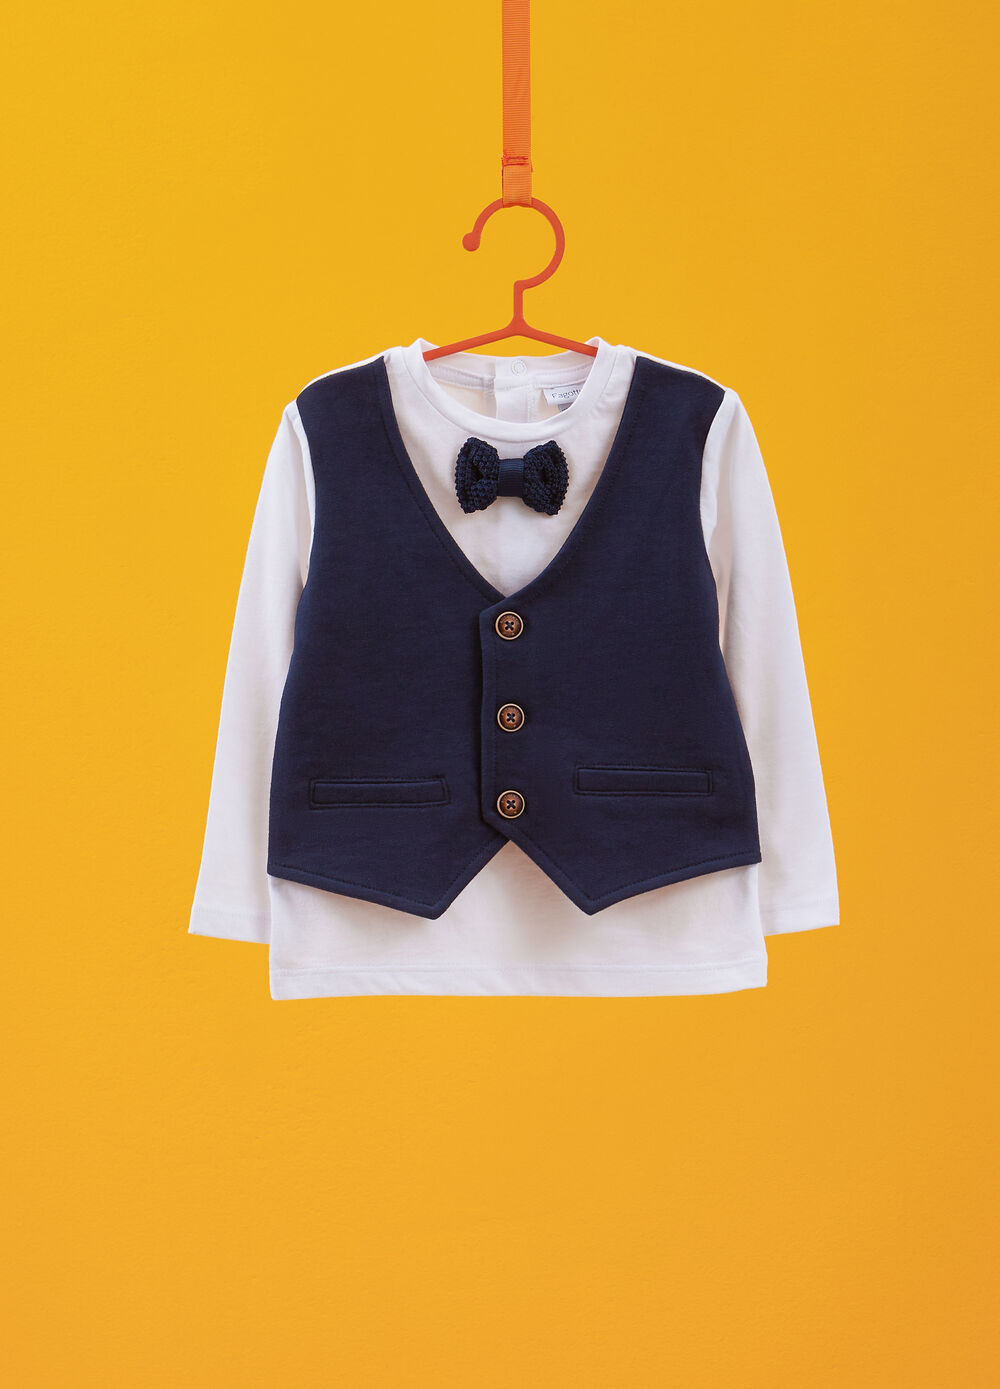 100% organic cotton T-shirt with waistcoat and bow tie